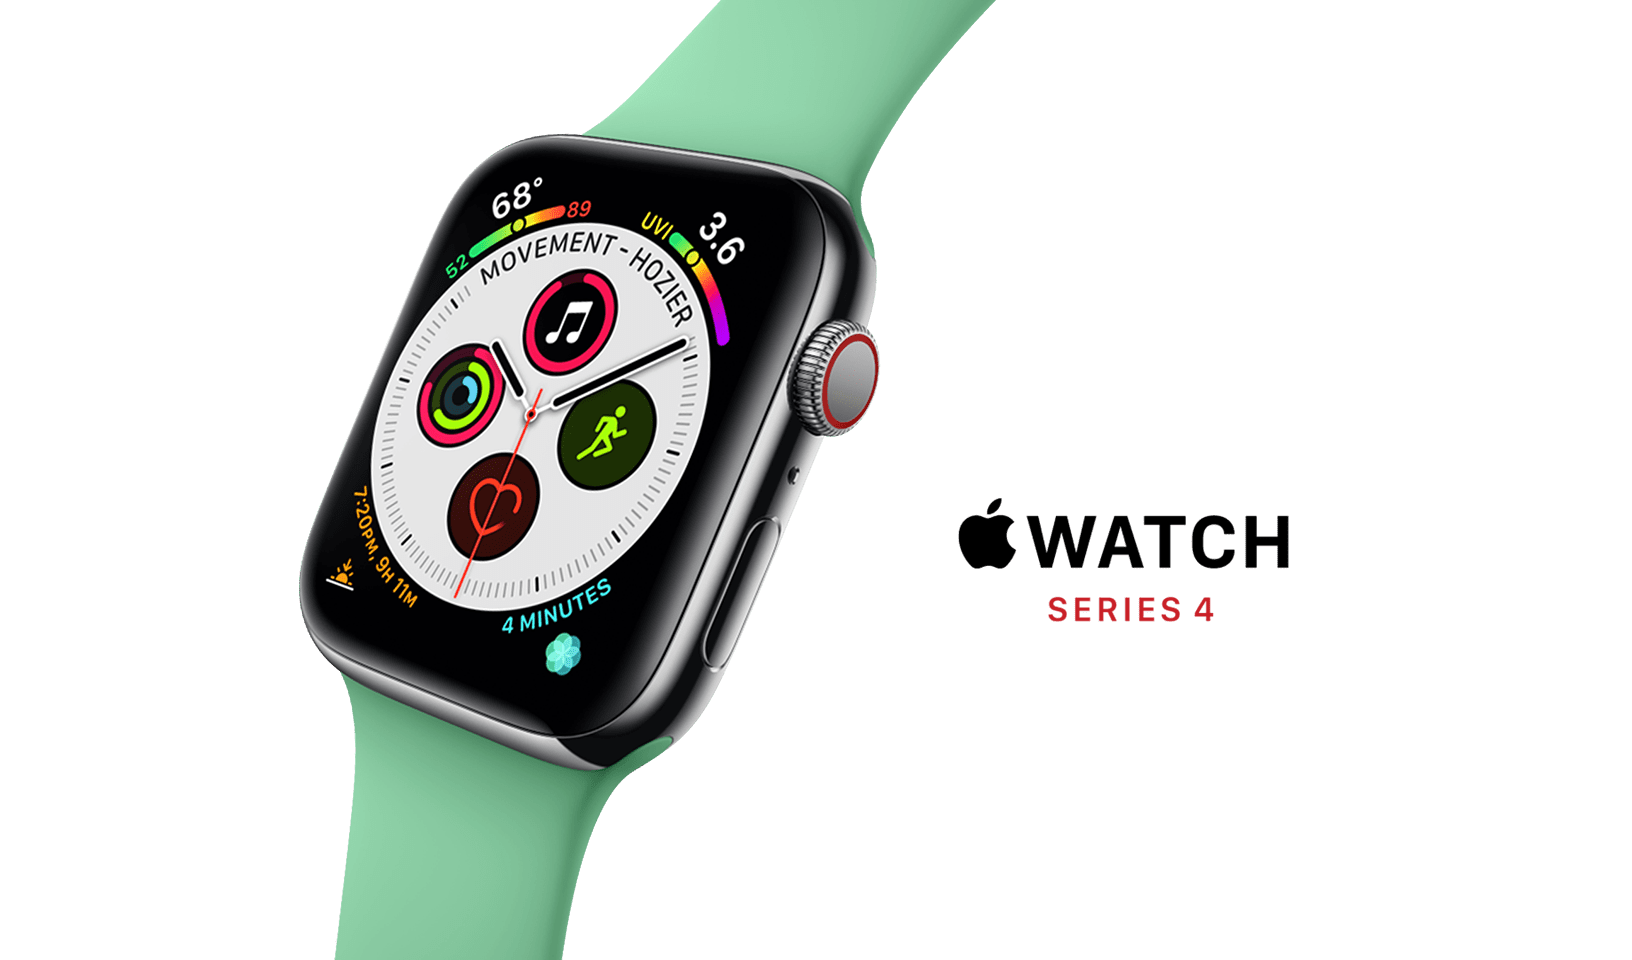 Pre-Register for the Apple Watch from Xfinity Mobile